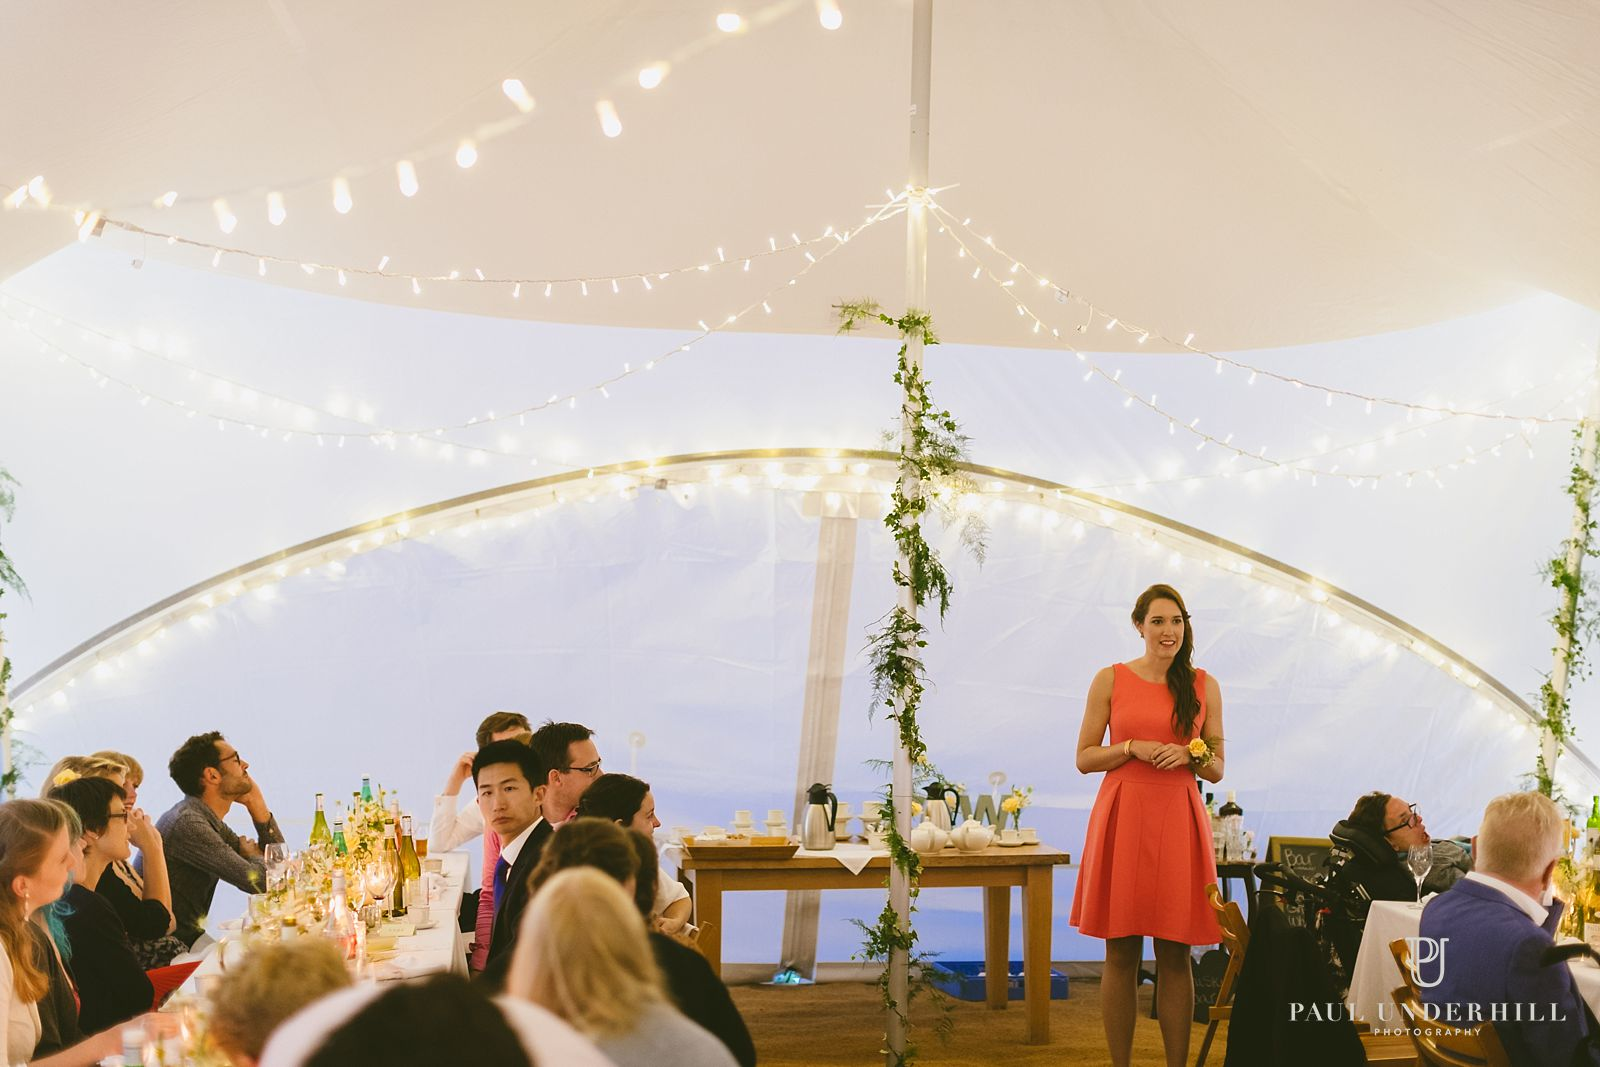 Evening wedding reception in Dorset